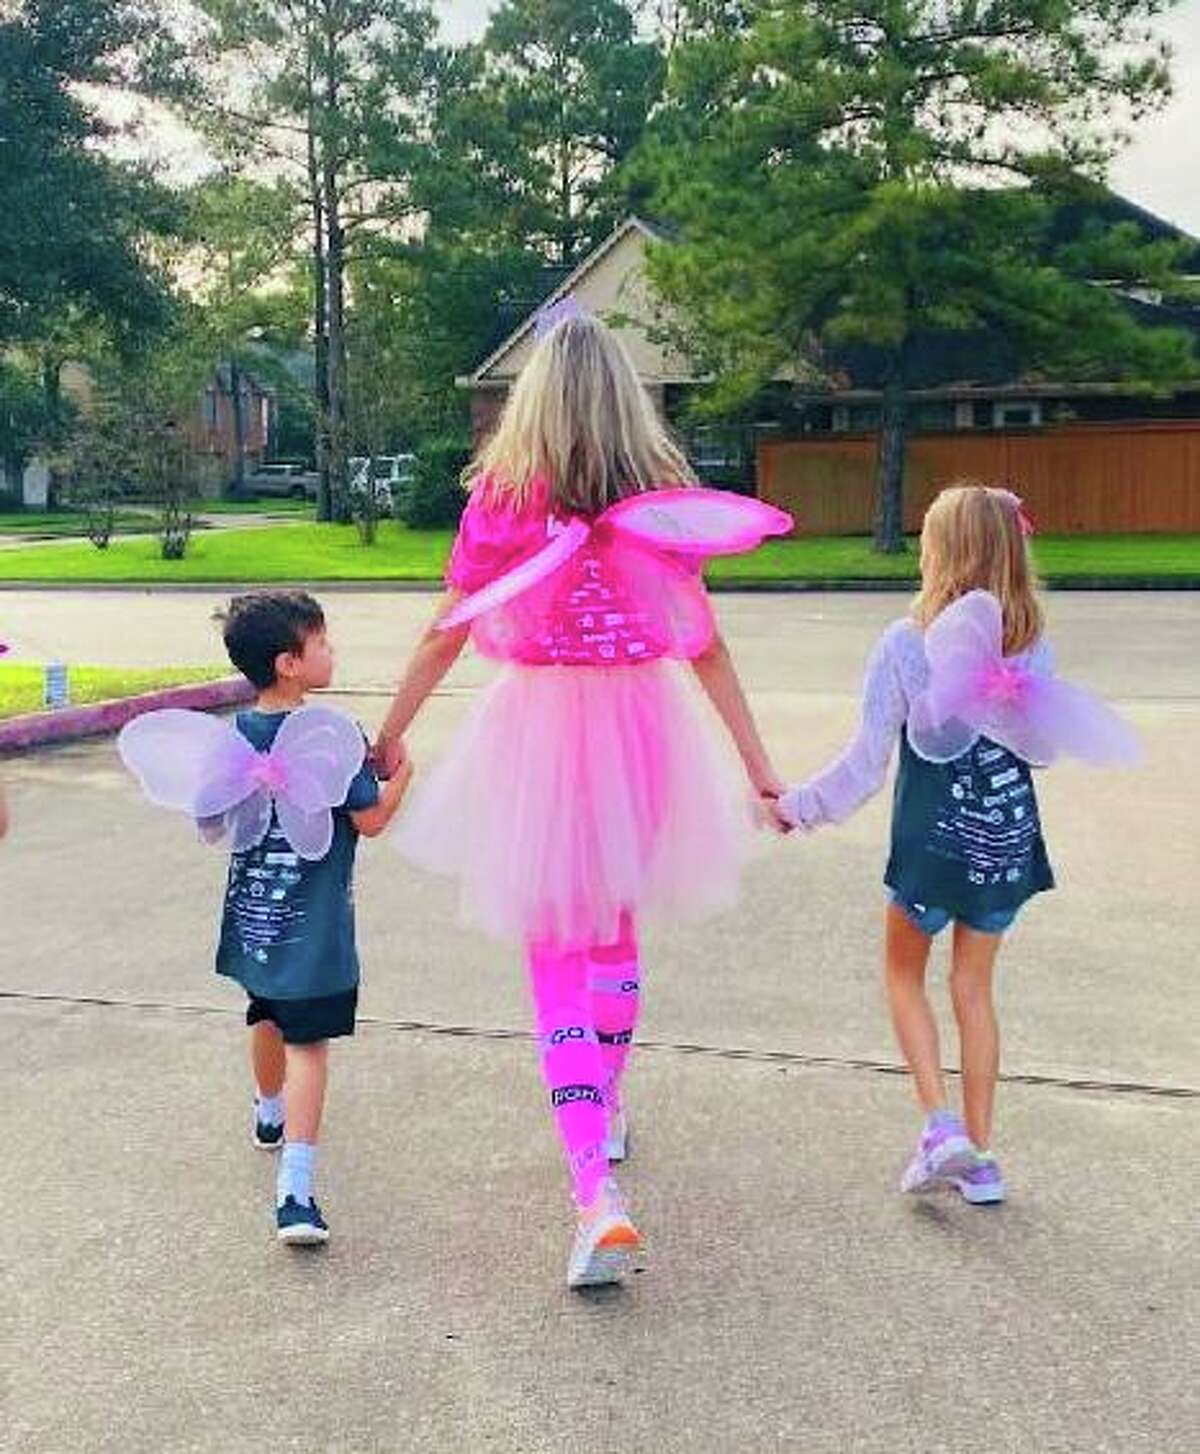 Victoria Simo holds her children's hands as they walk in her studio's 2021 Susan G. Komen Race for the Cure event on Saturday, Oct. 2, in northwest Houston.